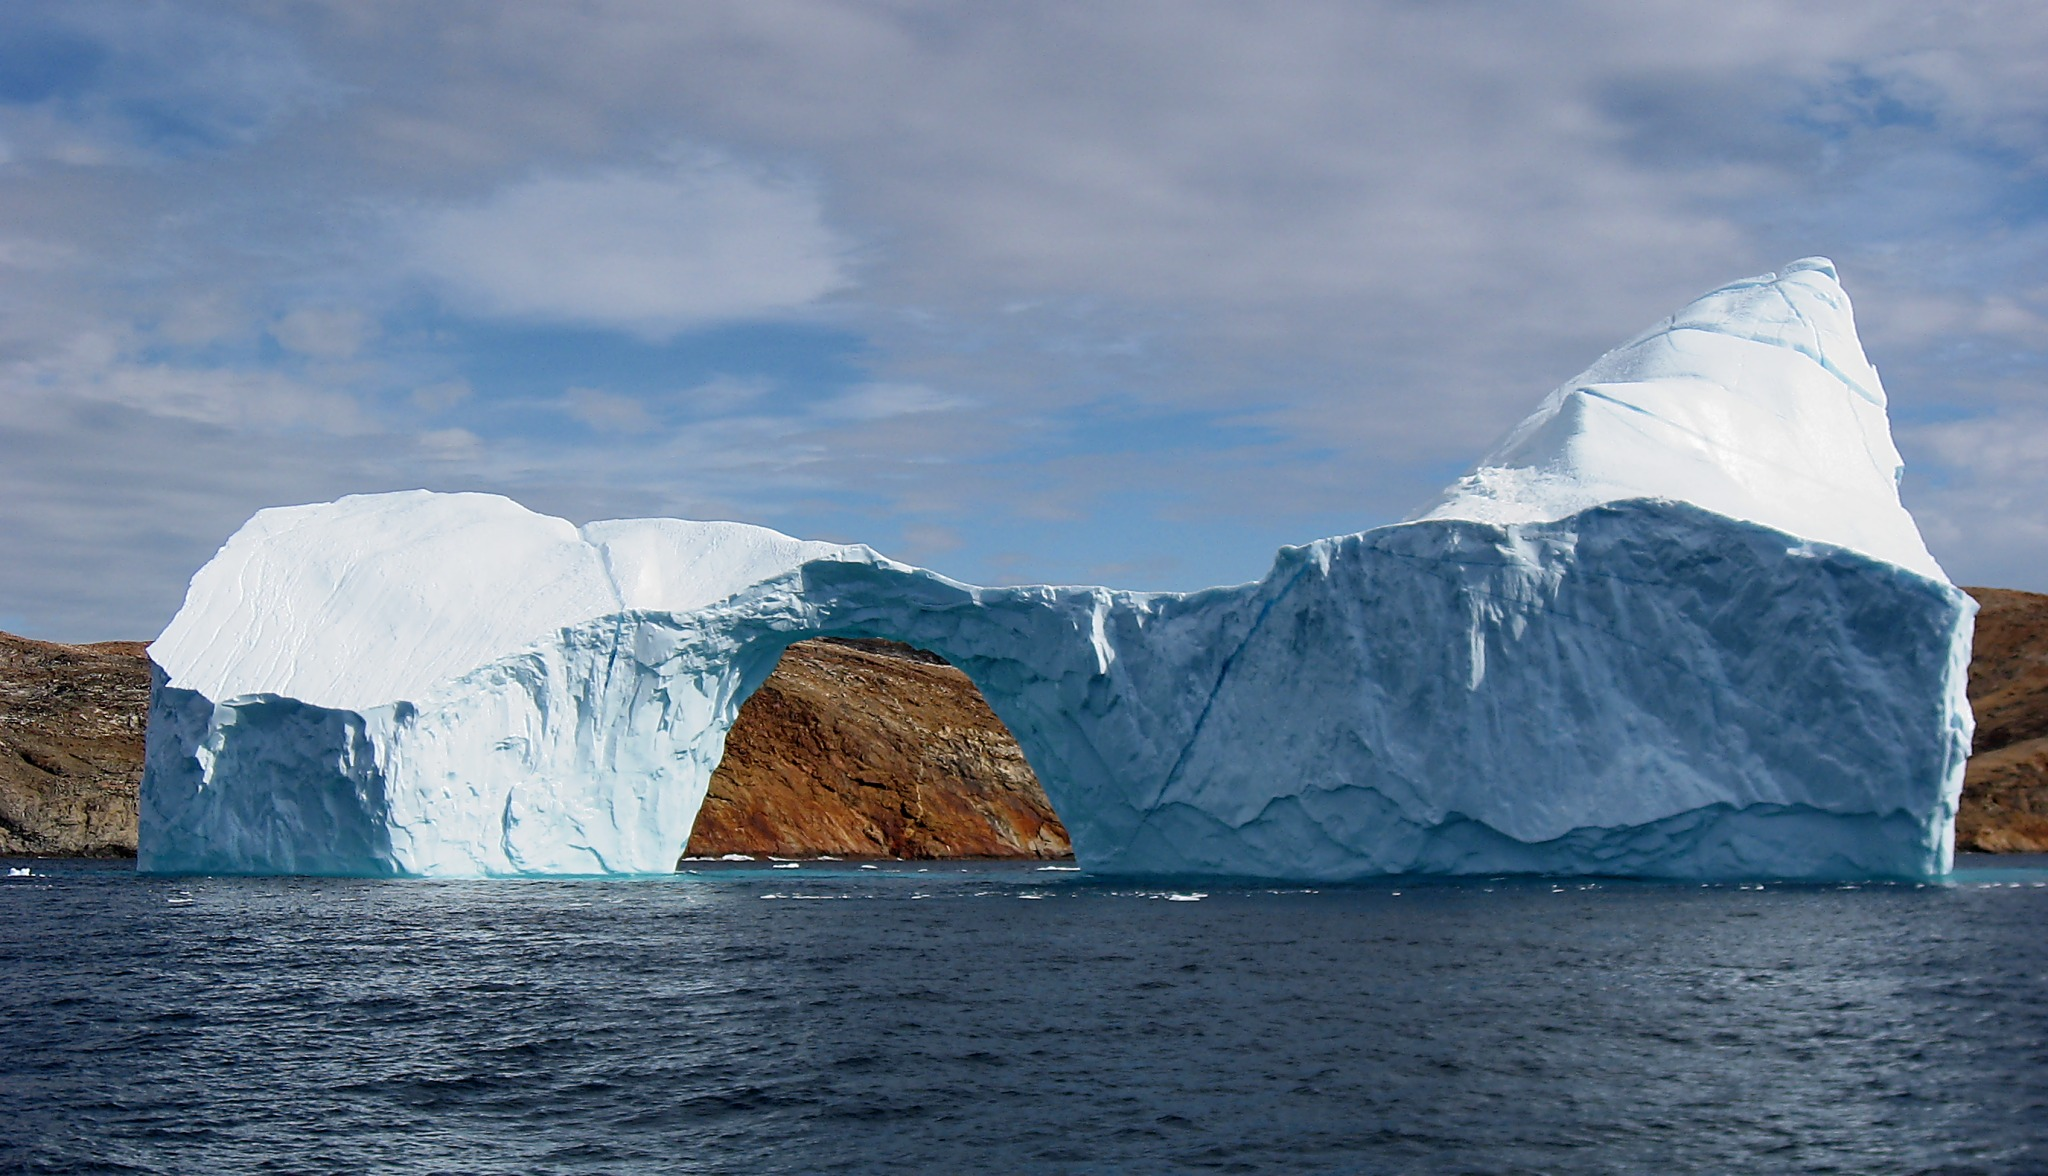 https://upload.wikimedia.org/wikipedia/commons/4/41/Iceberg_with_hole_near_Sandersons_Hope_2007-07-28_2.jpg